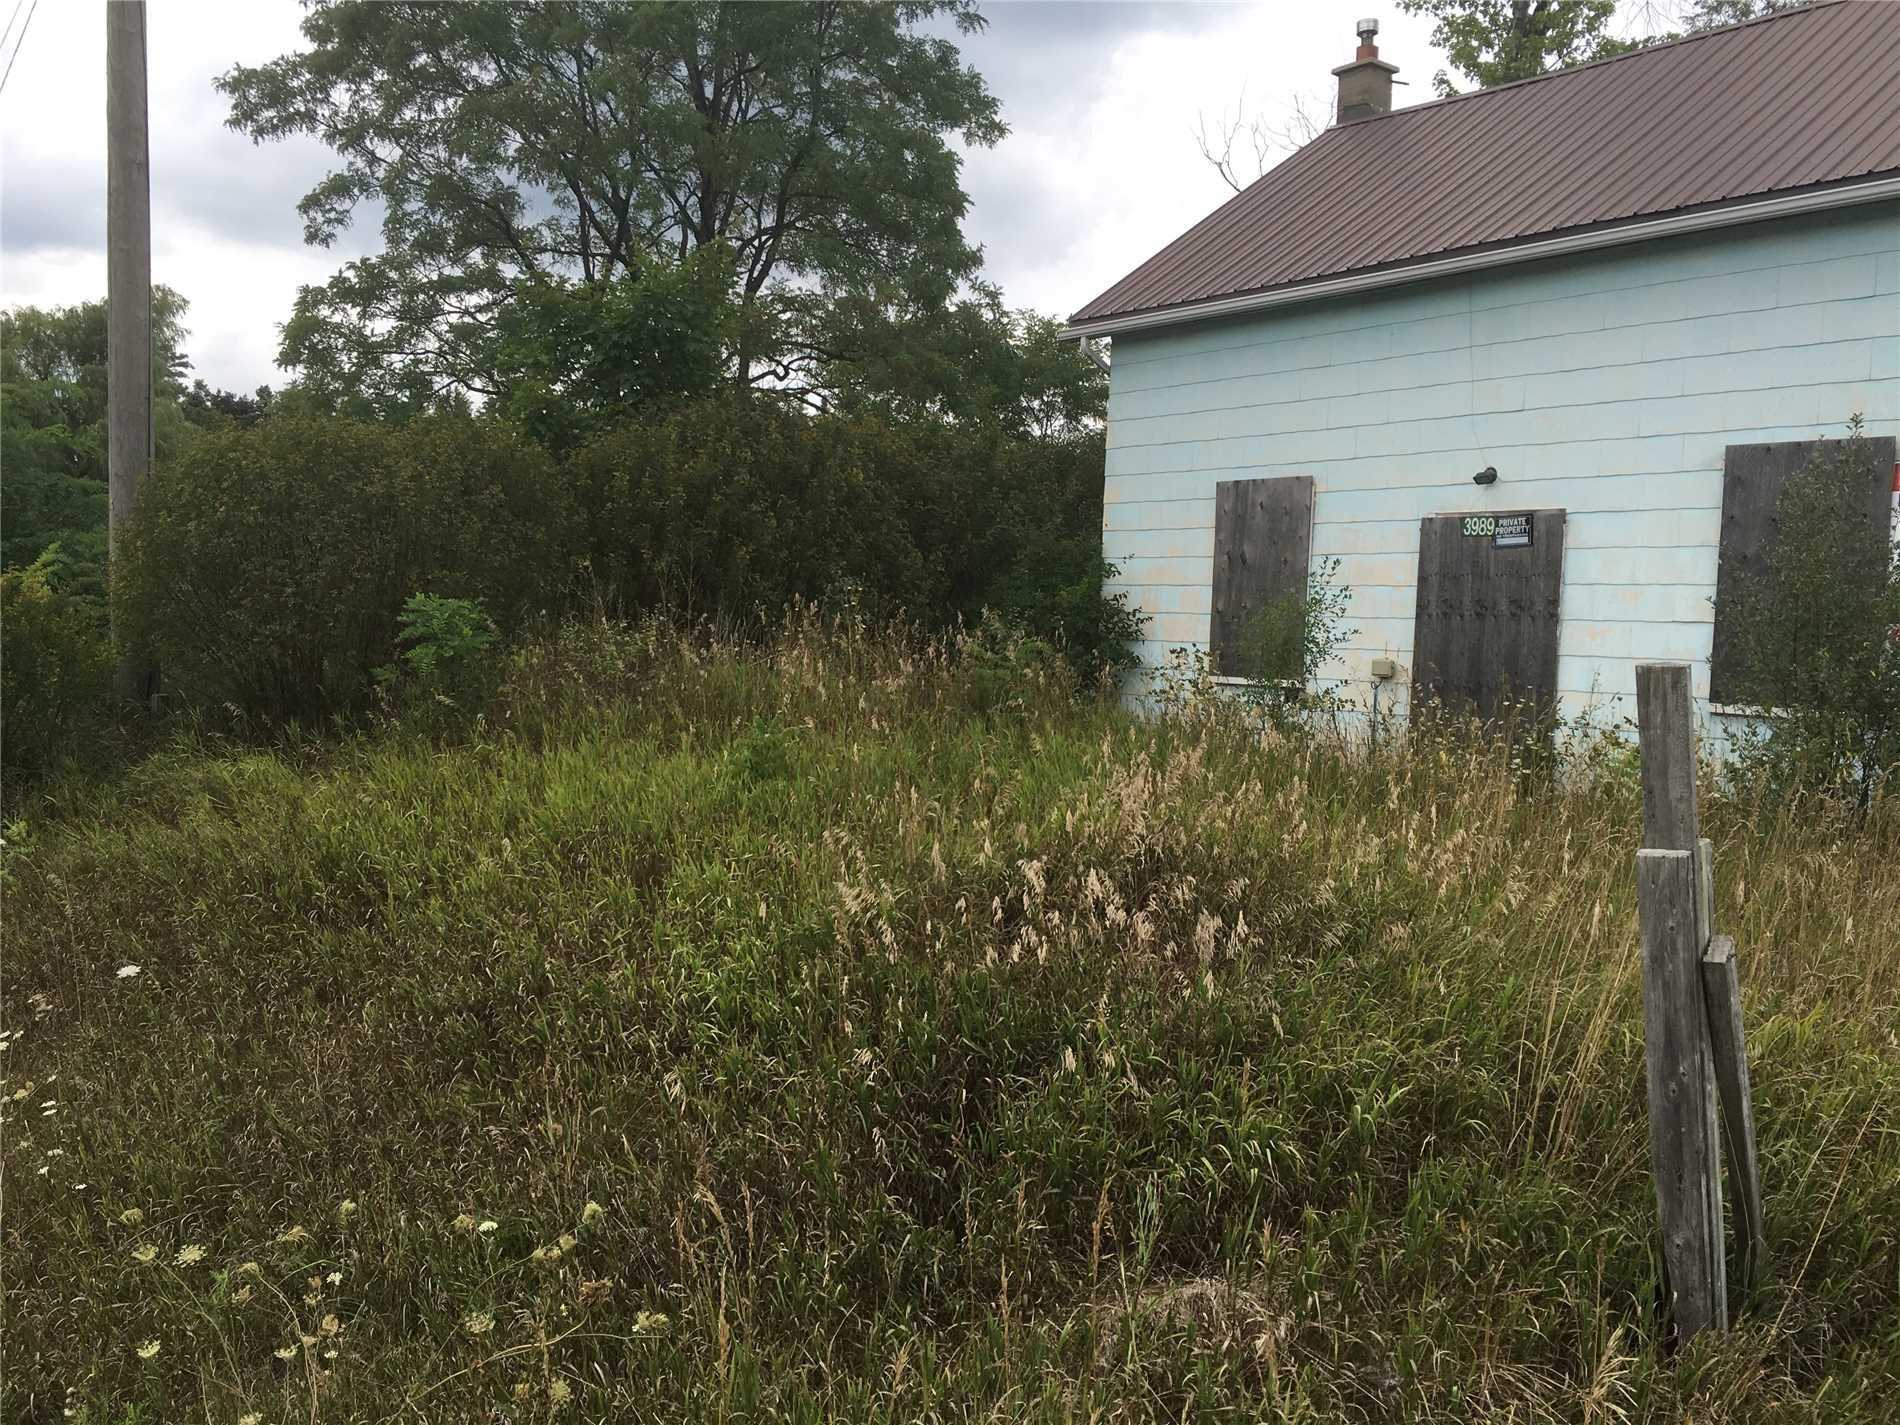 pictures of house for sale MLS: X4738517 located at 3989 Highway 6 Rd, Puslinch N0B2J0